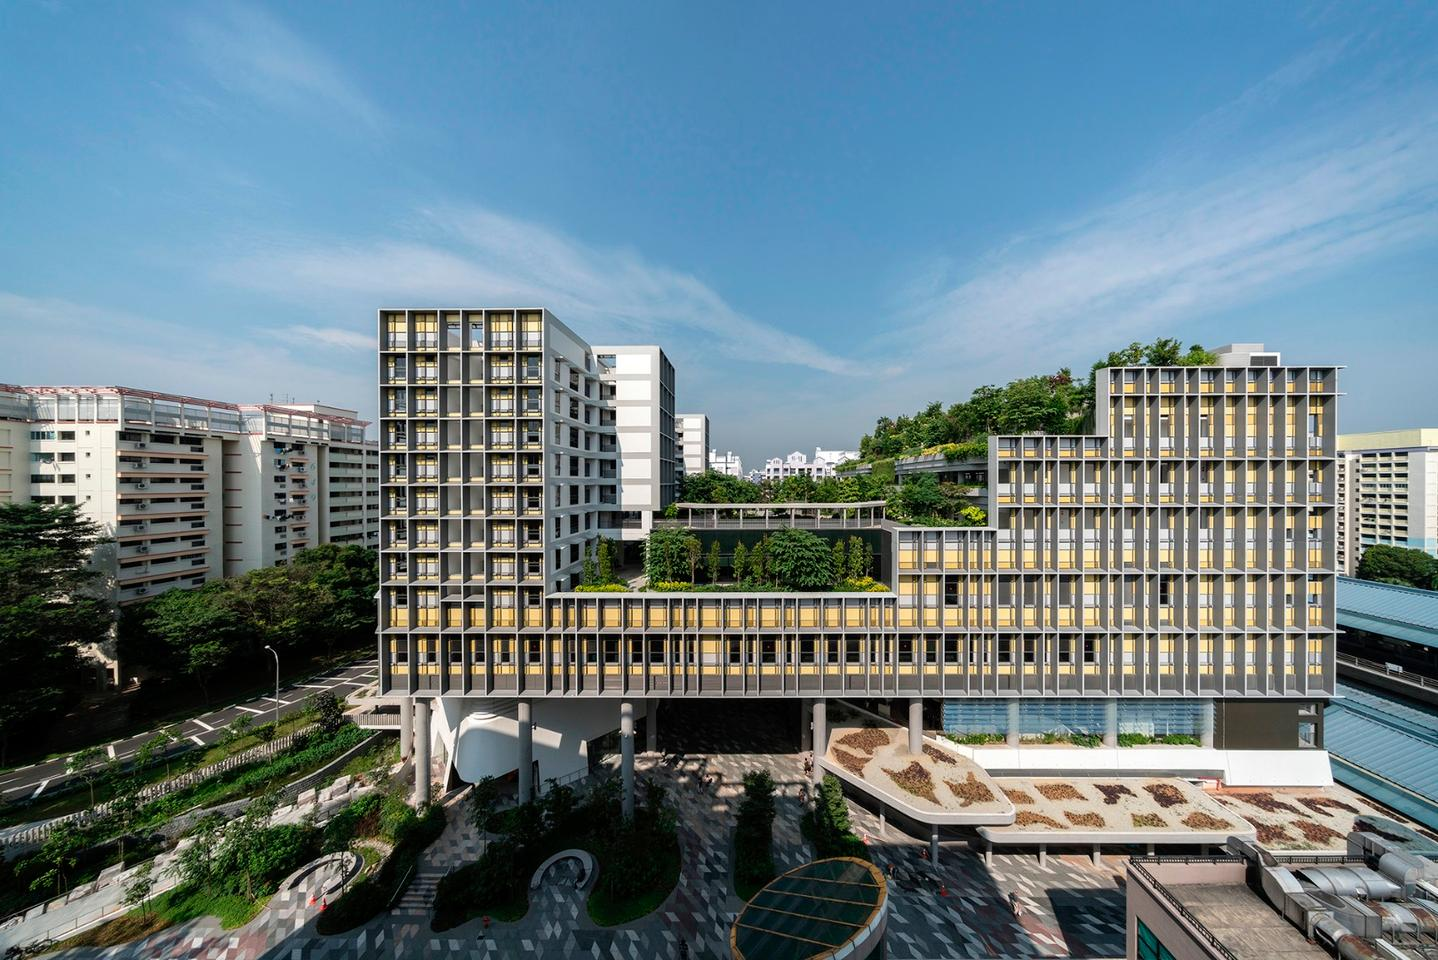 The Kampung Admiralty is located on a 0.9 hectare (2.2 acre) site that was previously a underutilized space between residential towers